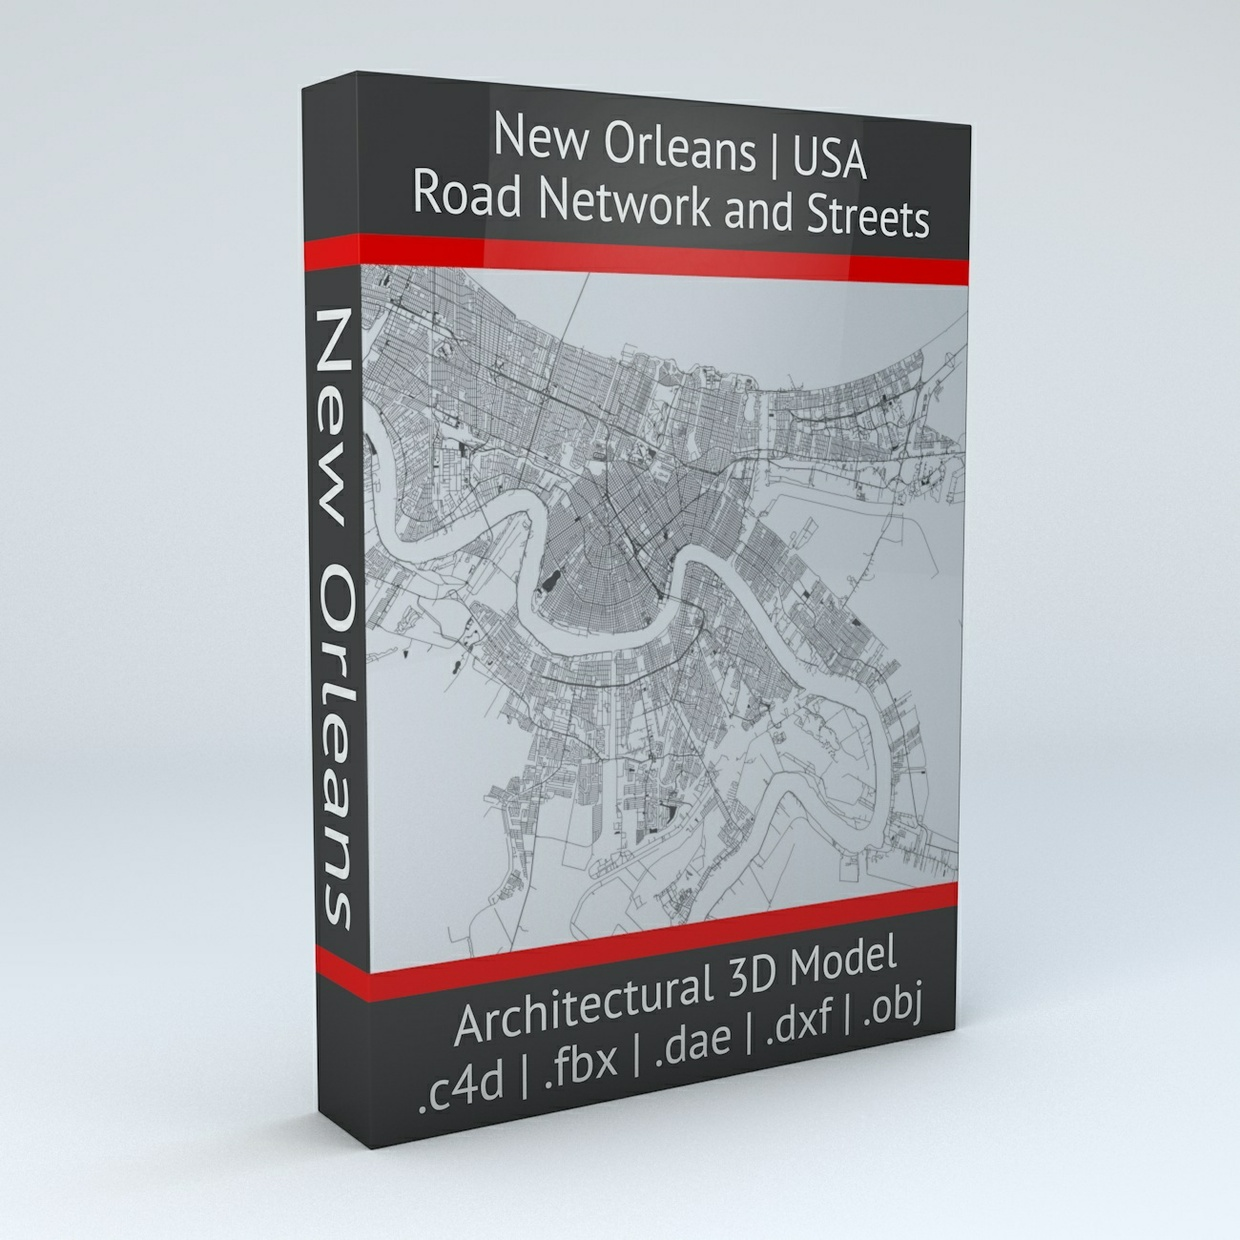 New Orleans Road Network Architectural 3D Model